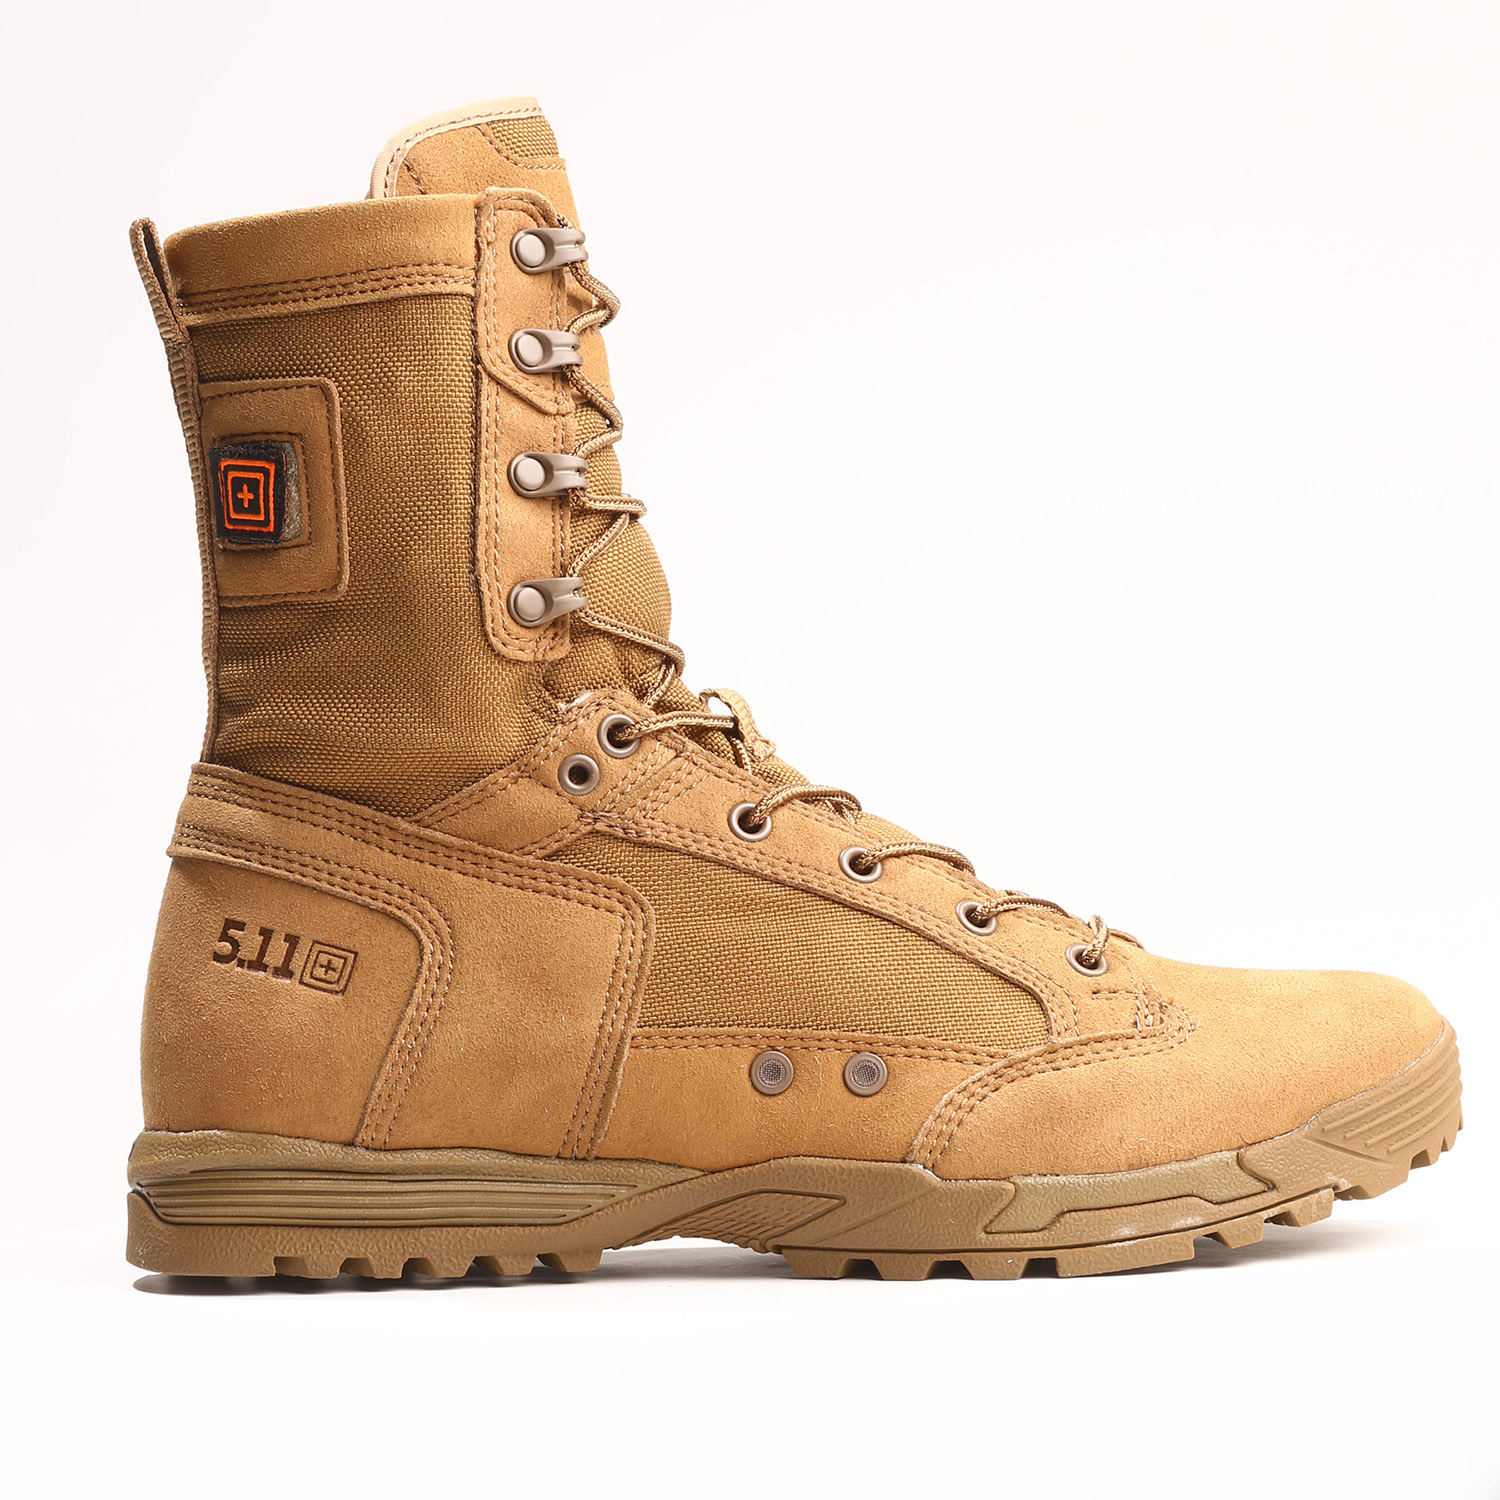 "5.11 Tactical 8"" Skyweight RapidDry Boot"